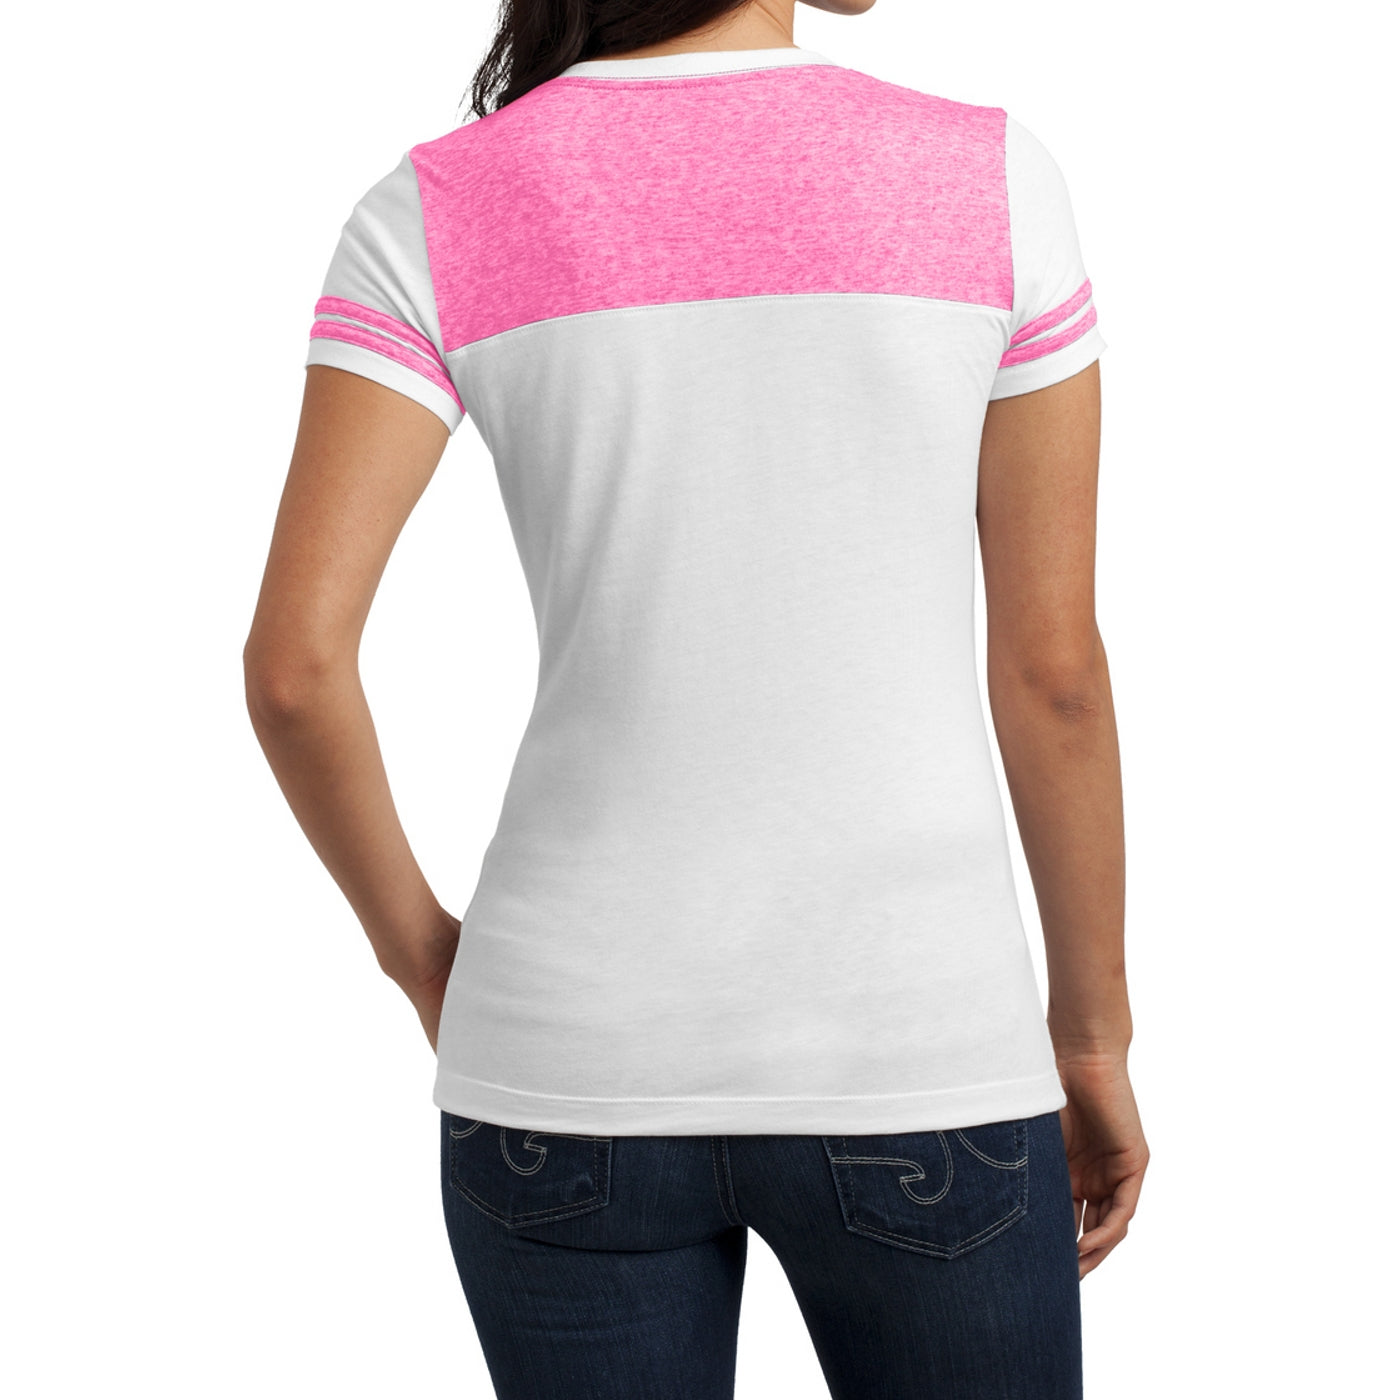 Women's Juniors Varsity V-Neck Tee - White/ Bright Pink